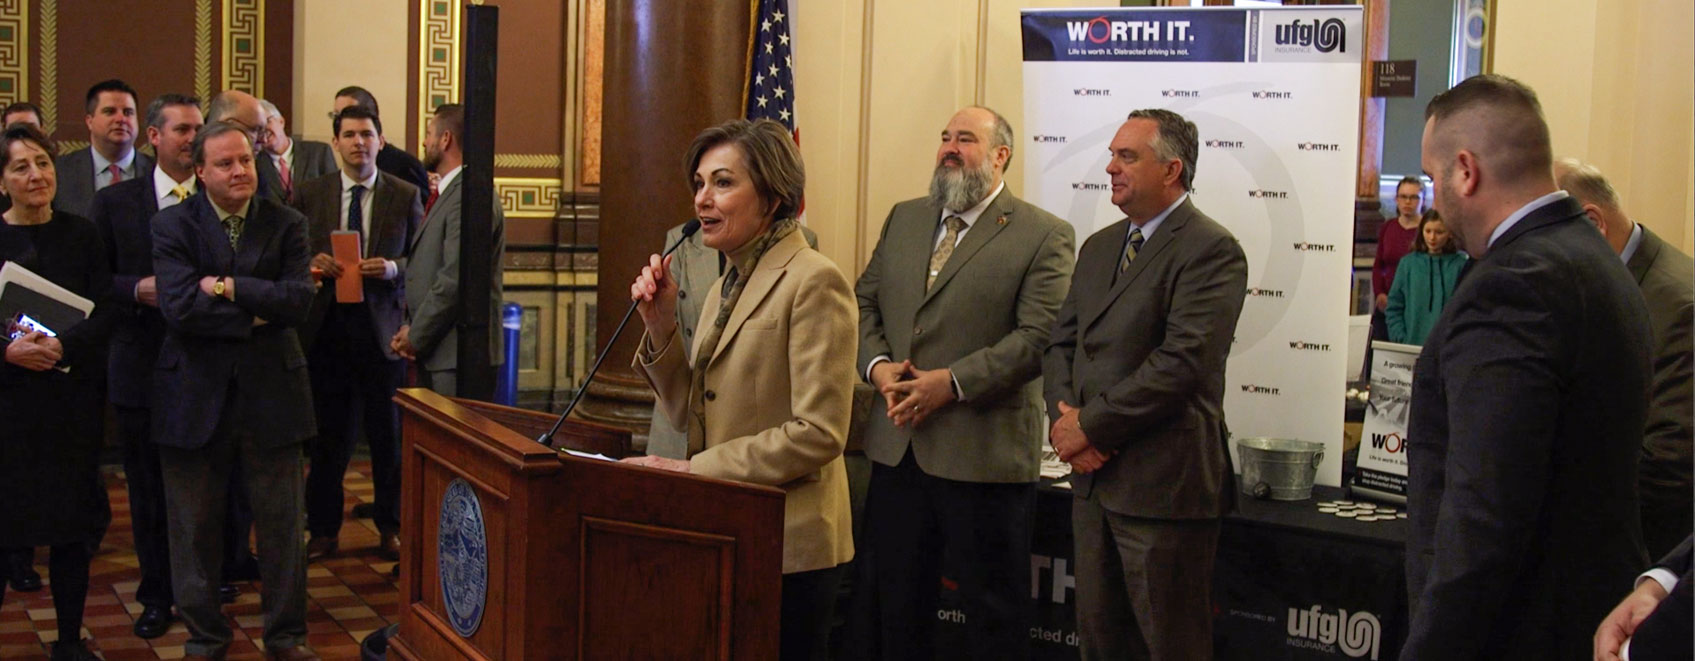 2016 Insurance Day on the Hill featuring Iowa Governor Kim Reynolds